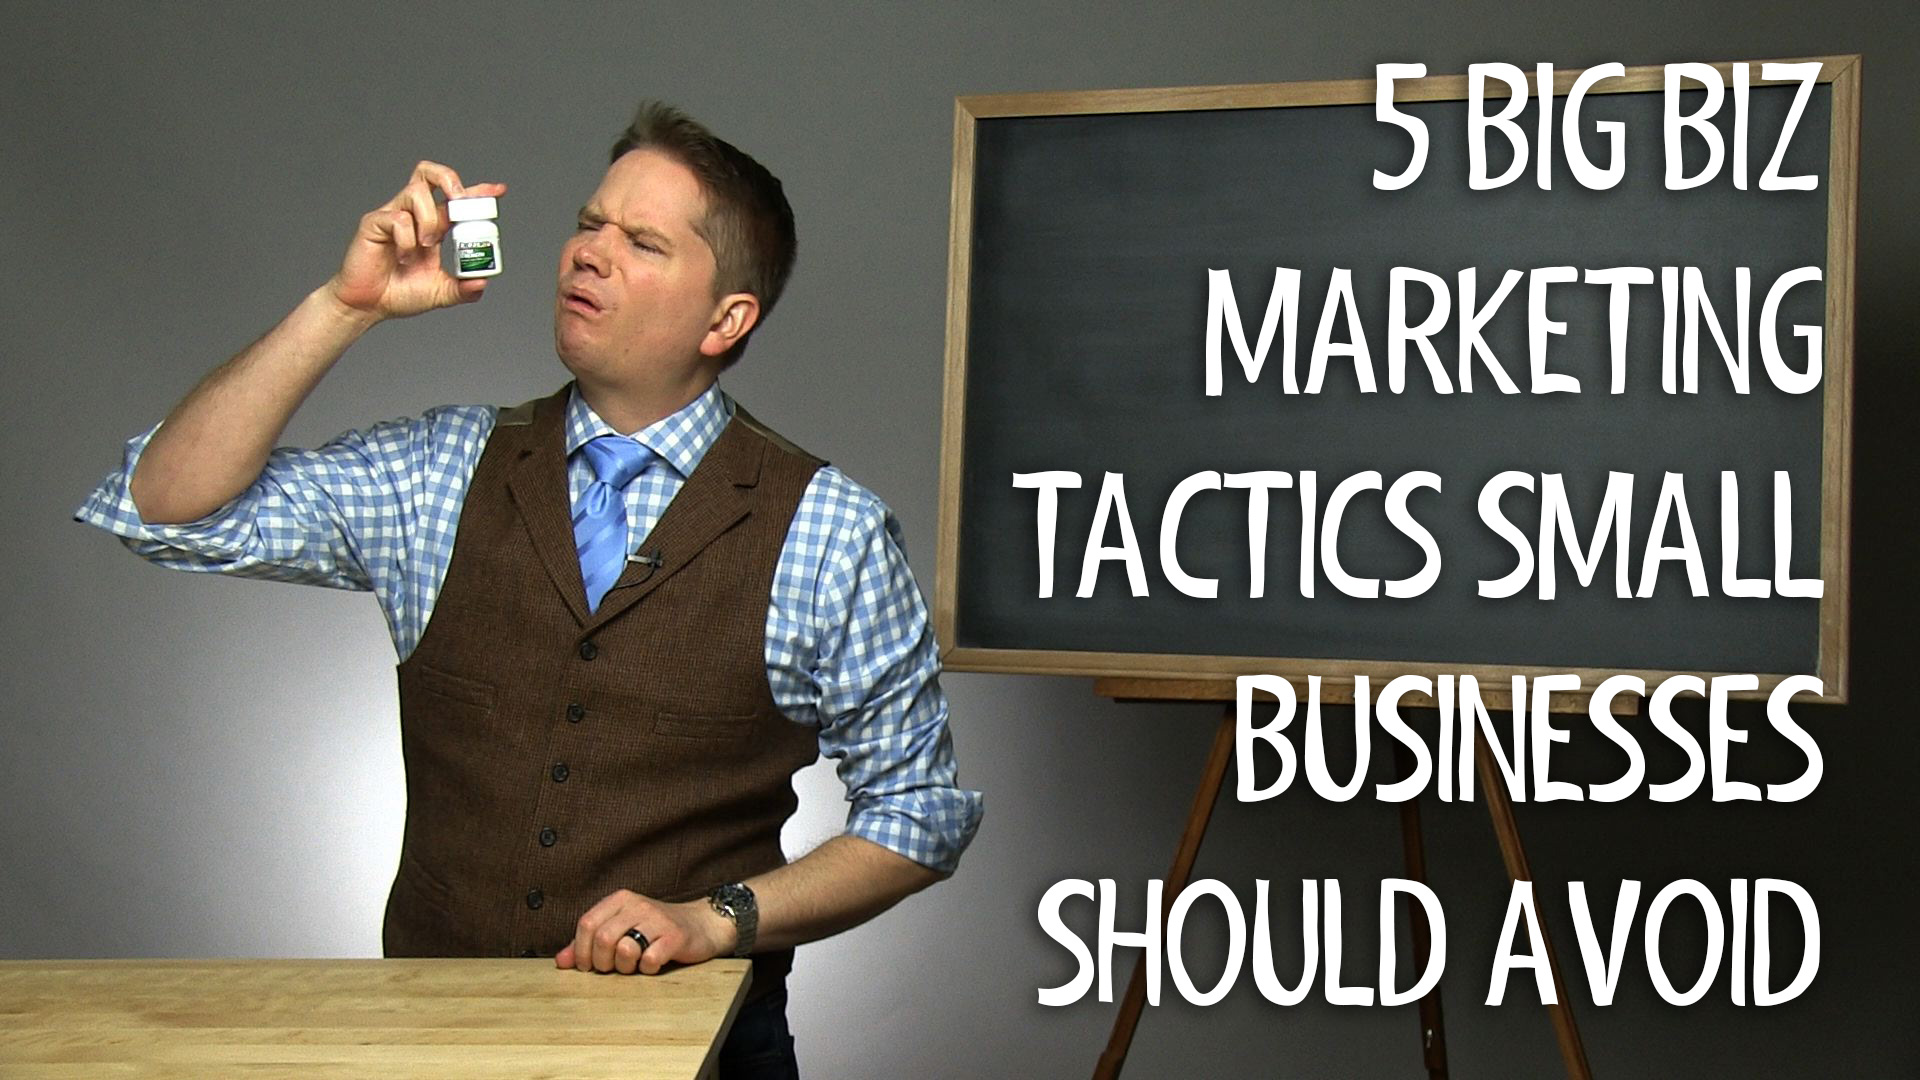 5 Big Biz Marketing Tactics Small Businesses Should Avoid